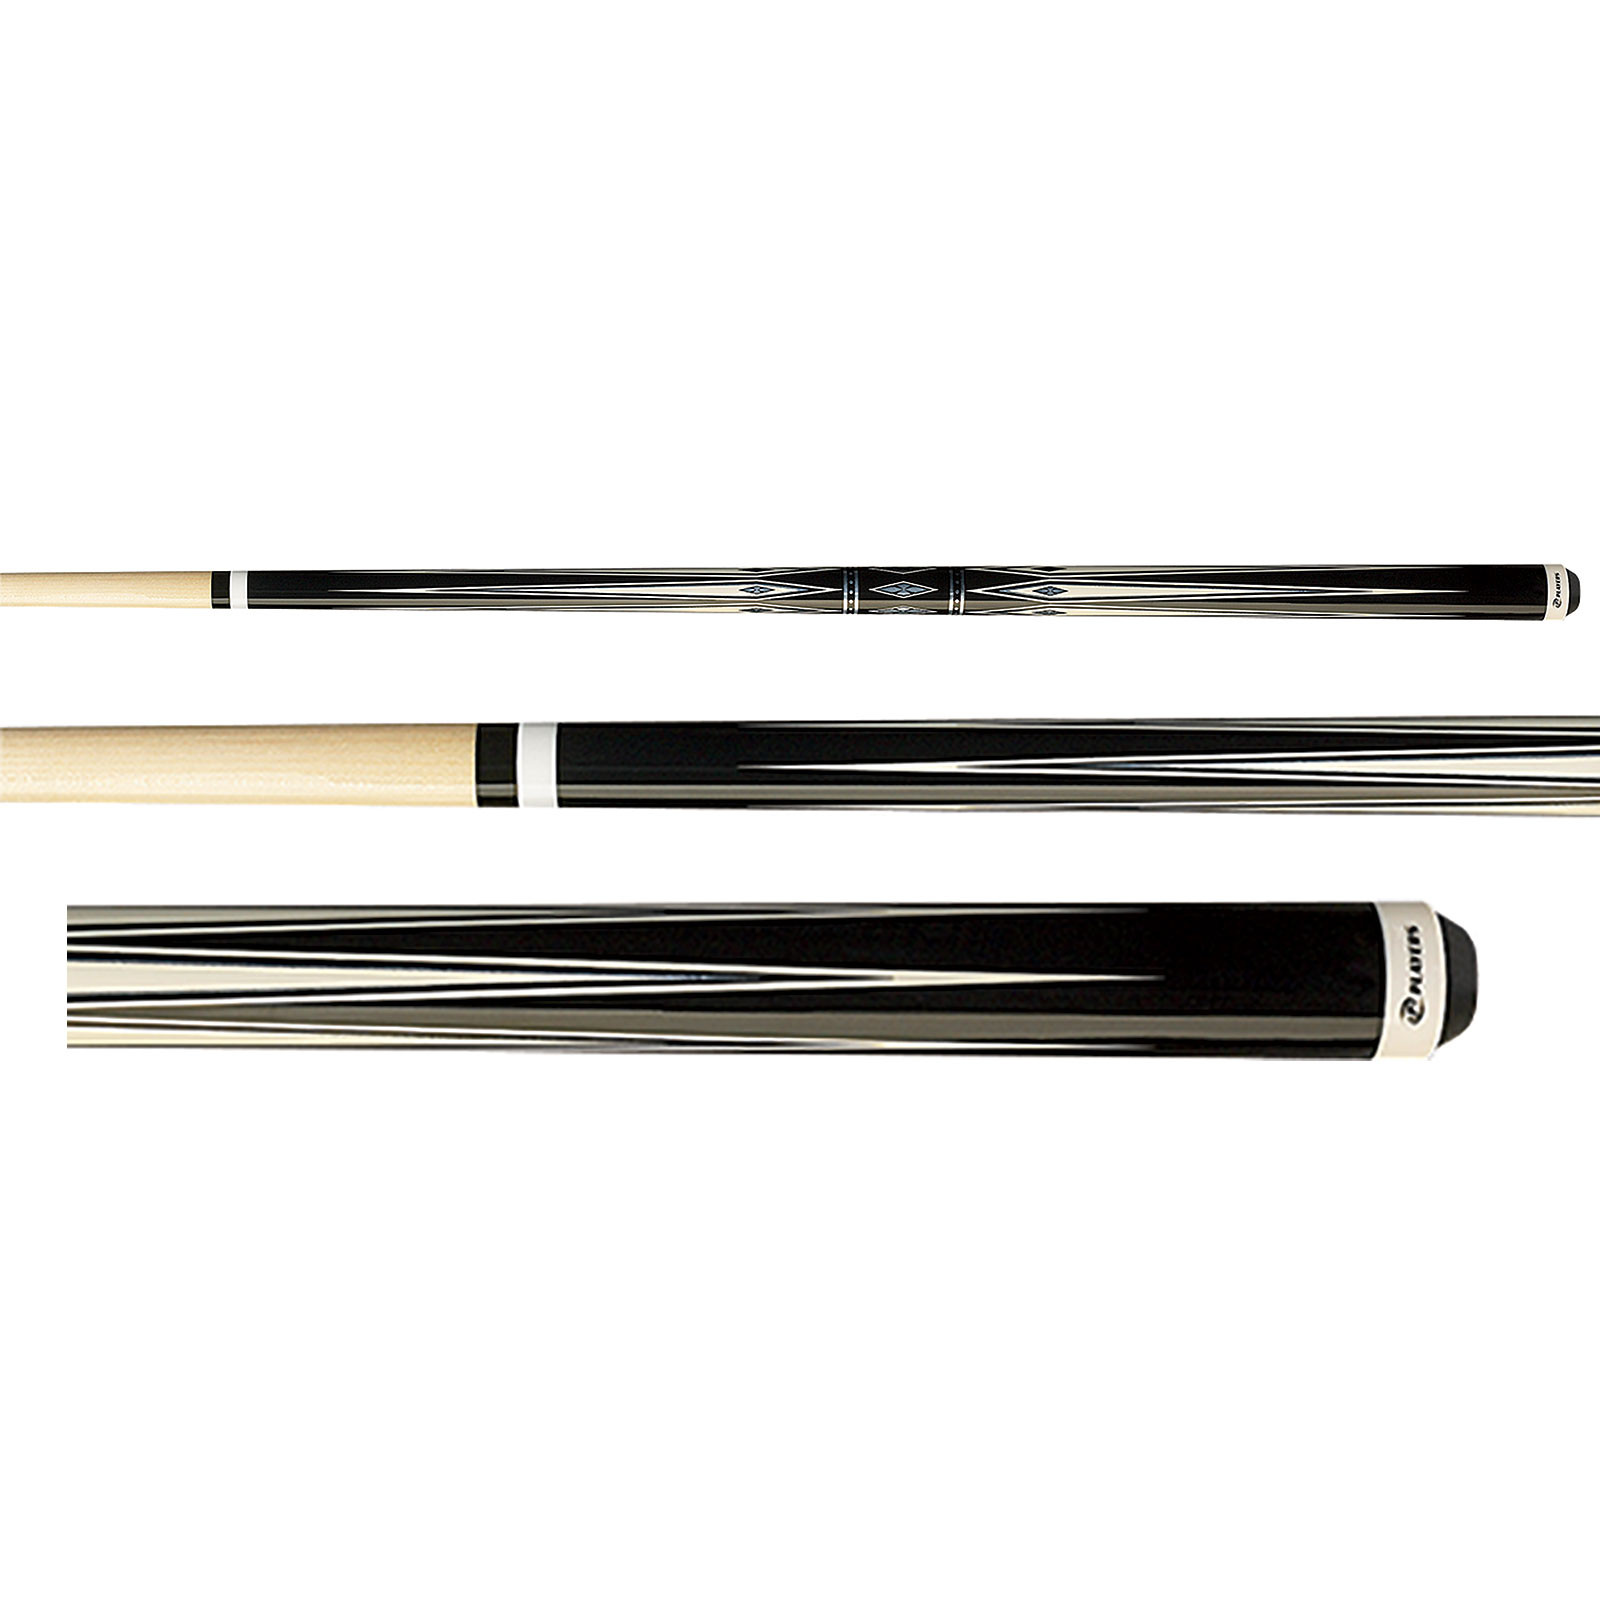 Players G-3372 Black and White Diamond Pool Cue Stick